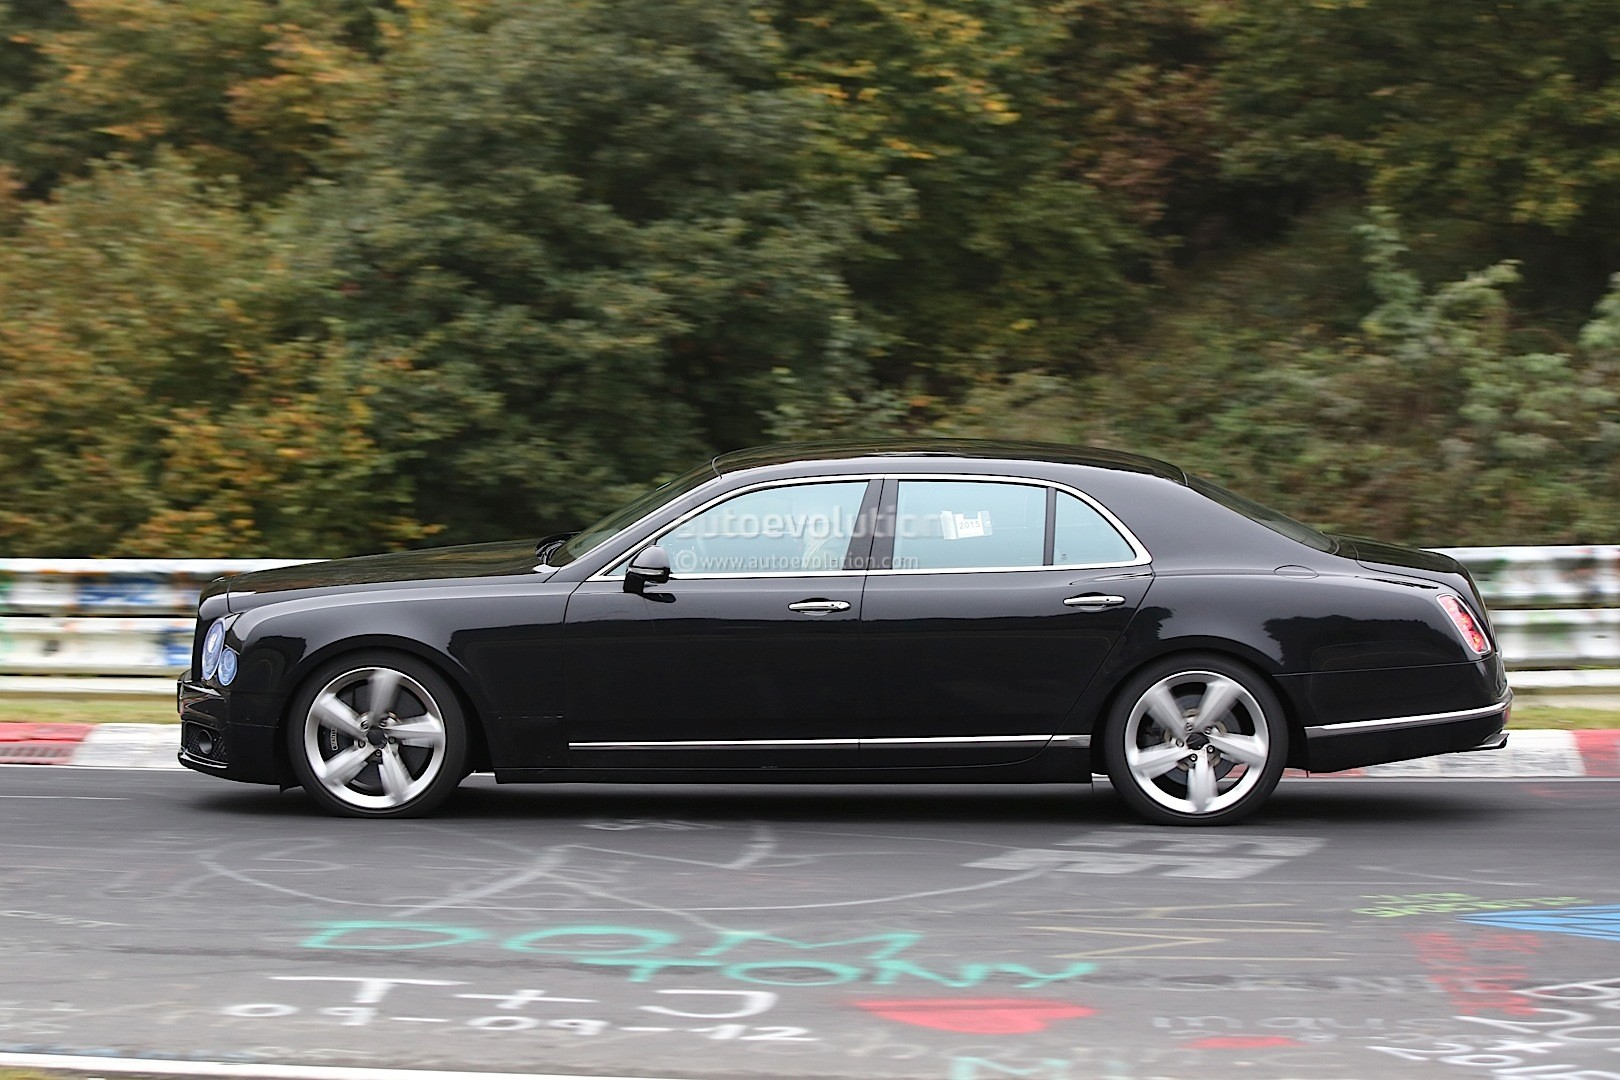 2017 Bentley Mulsanne Spyshots Reveal Long Wheelbase Model